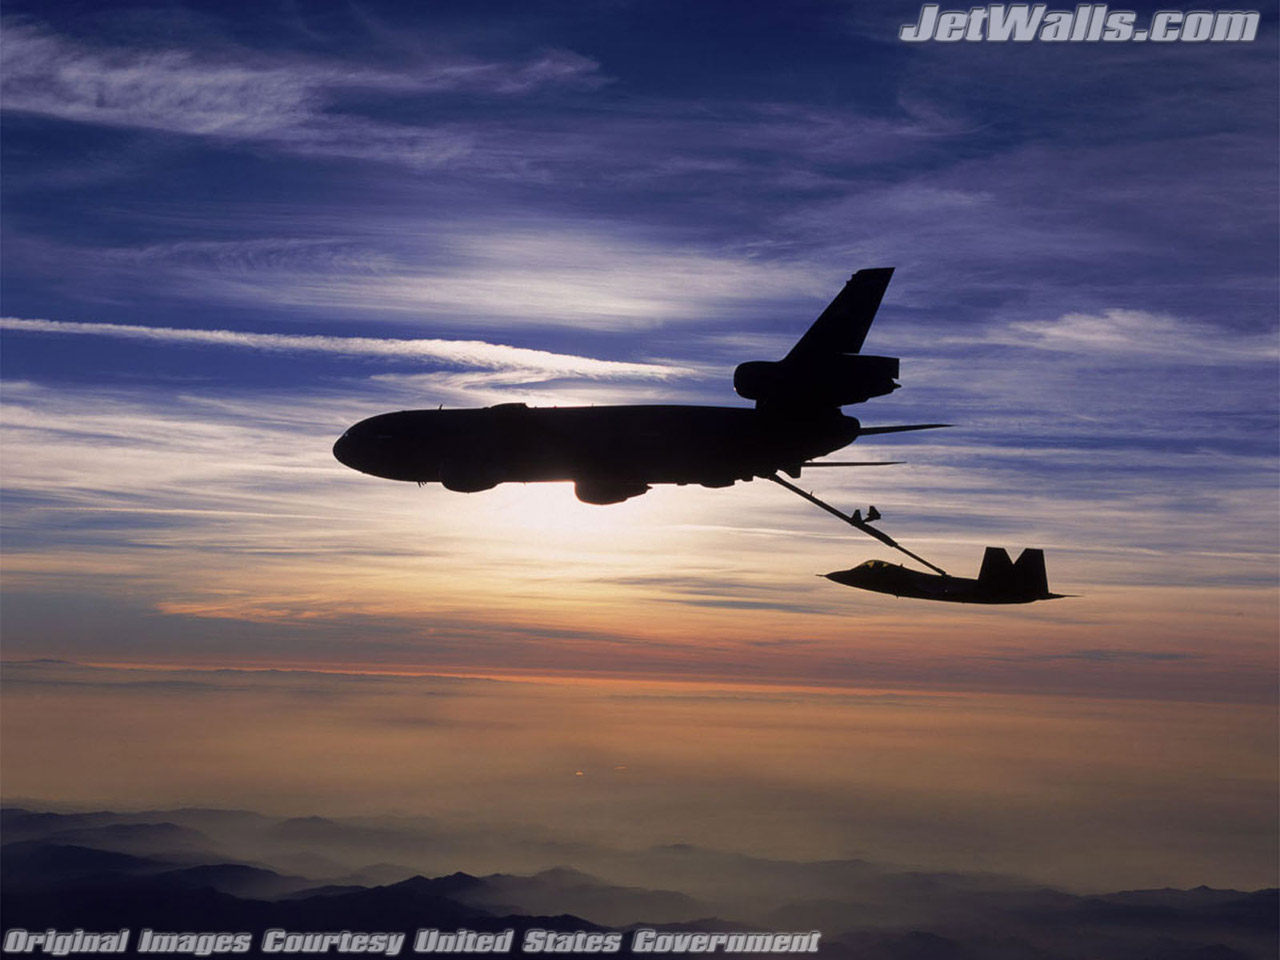 """KC-10 Extender refuels an F/A-22 Raptor"" - Wallpaper No. 63 of 101. Right click for saving options."